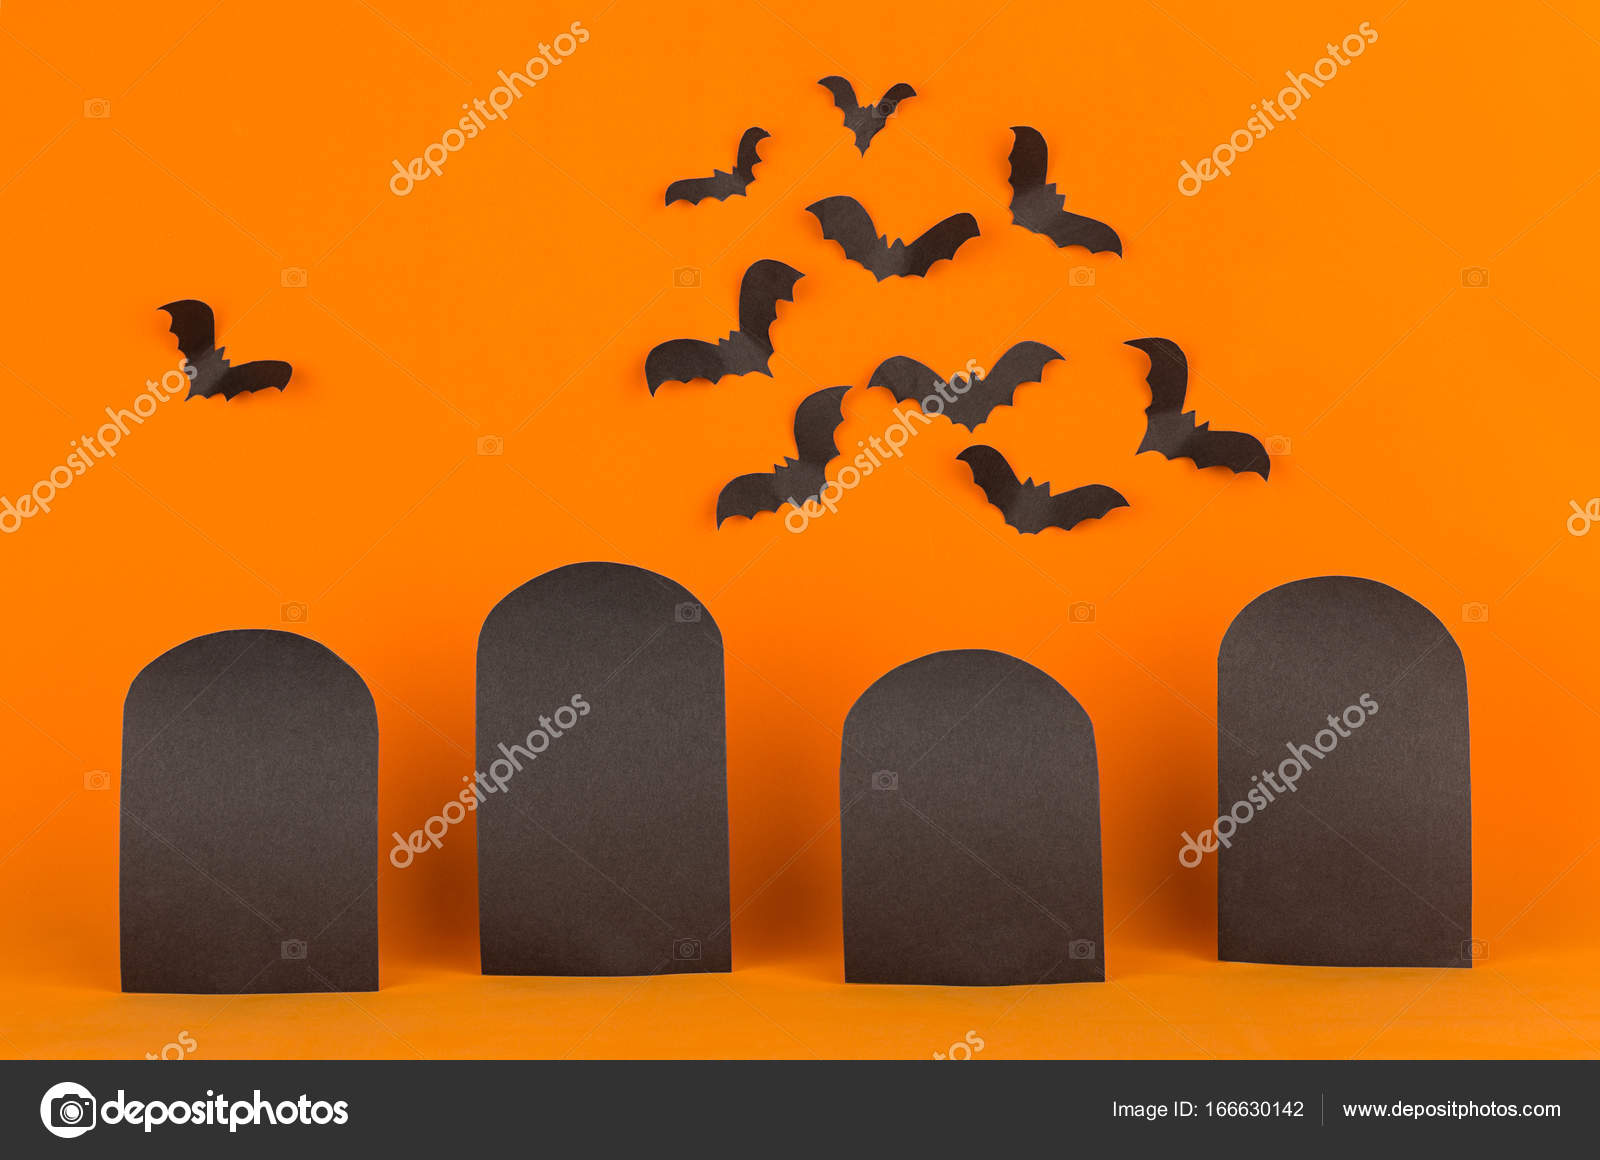 fun halloween orange background with blank labels and bats flock